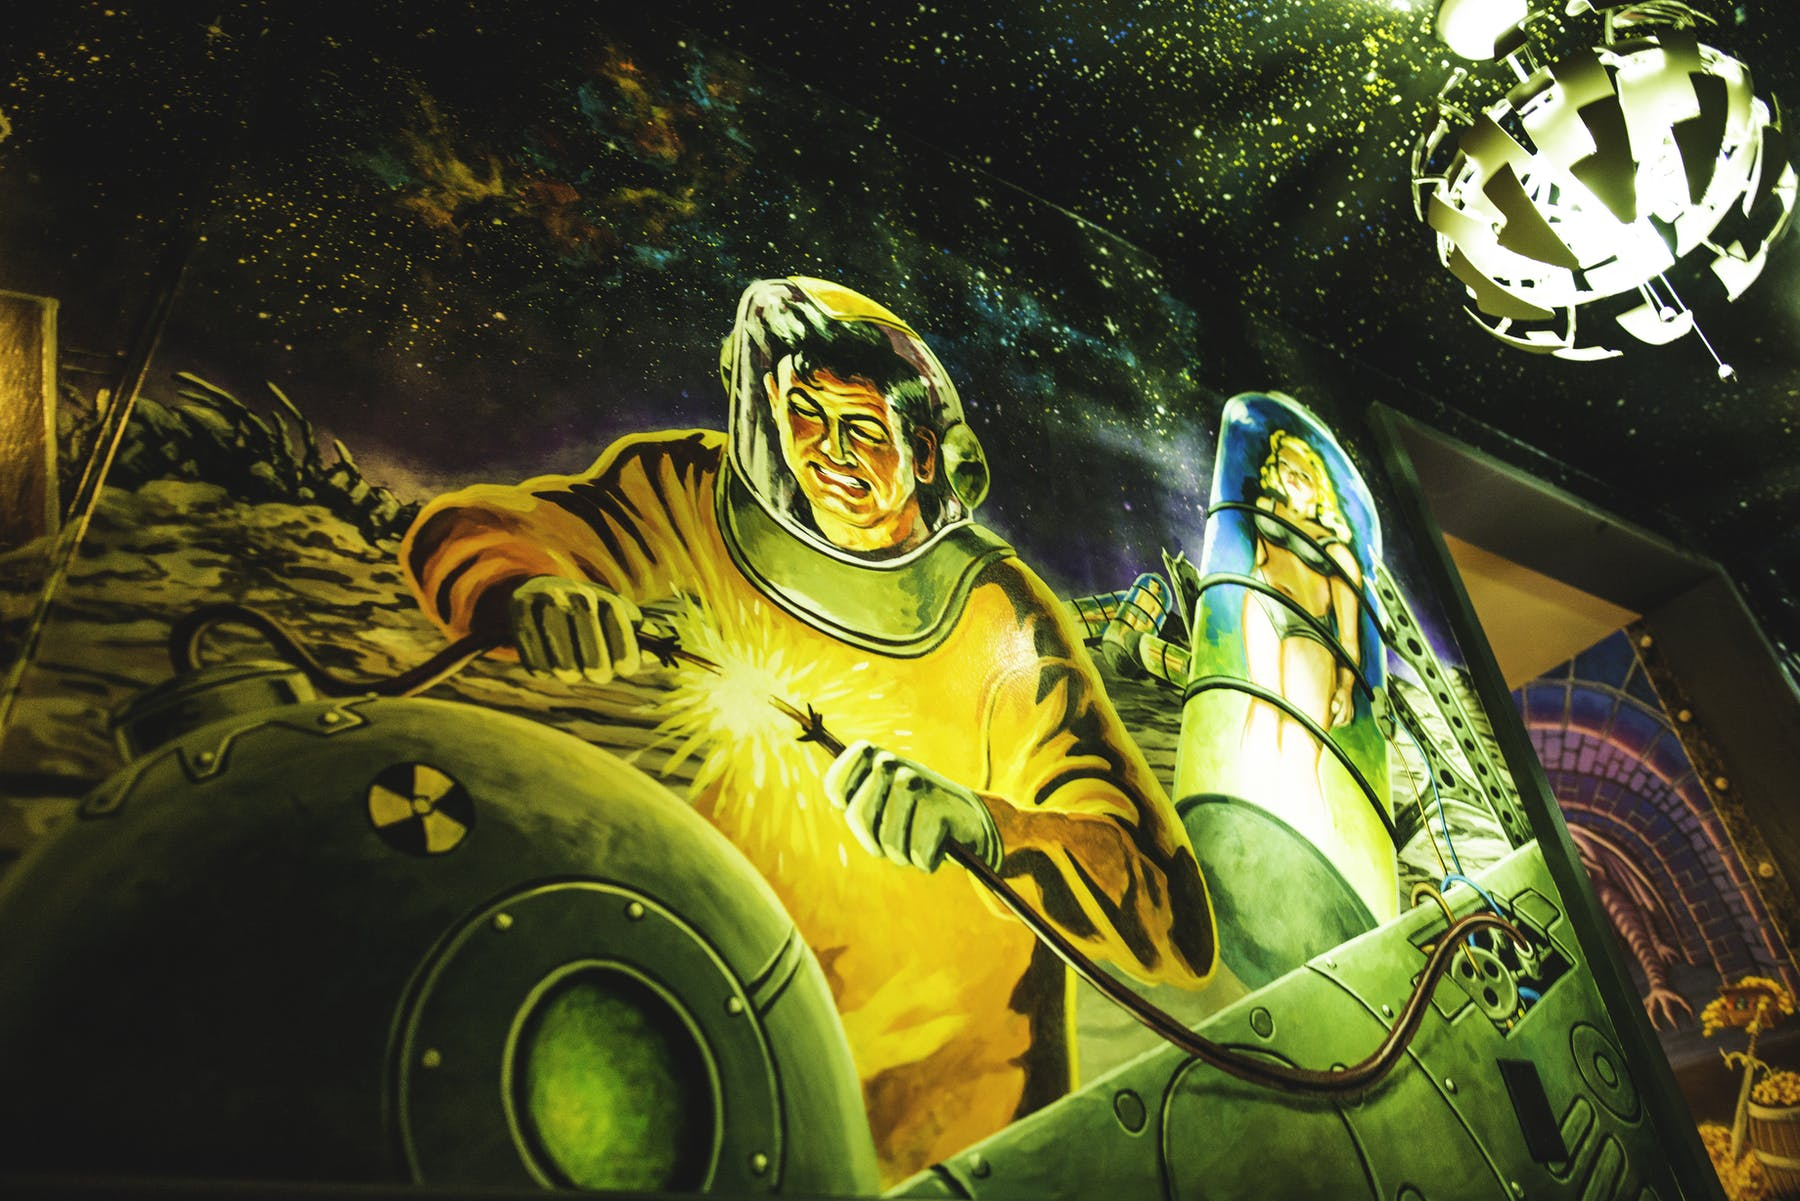 Sci-fi inspired decor at Storm Crow Alehouse